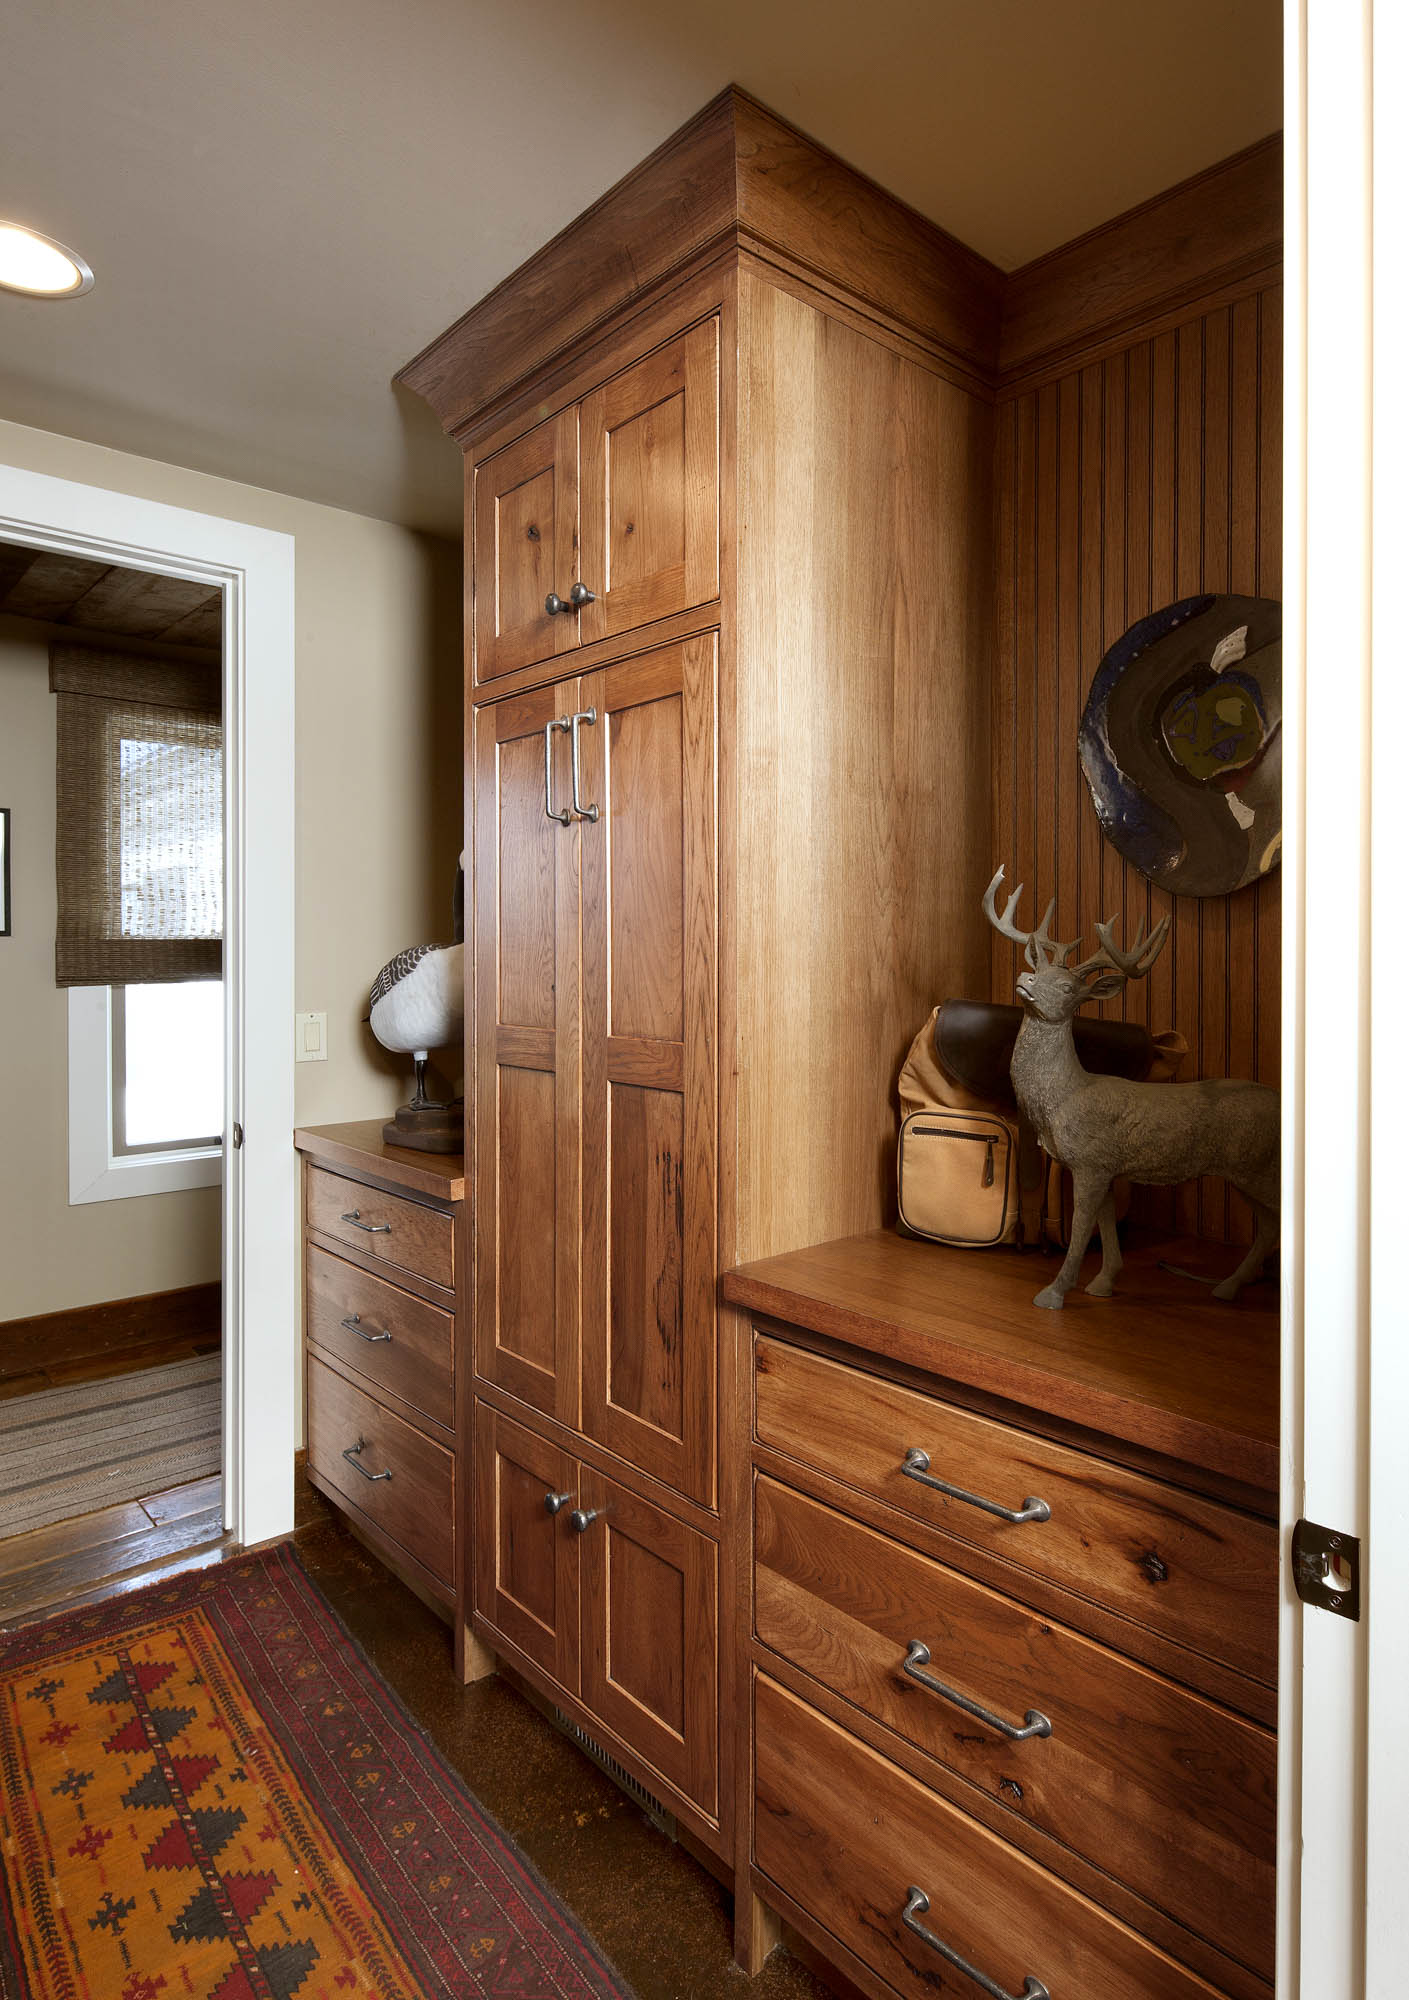 Stained guest bedroom cabinets in Truffle with Ebony Glaze by Showplace Cabinetry